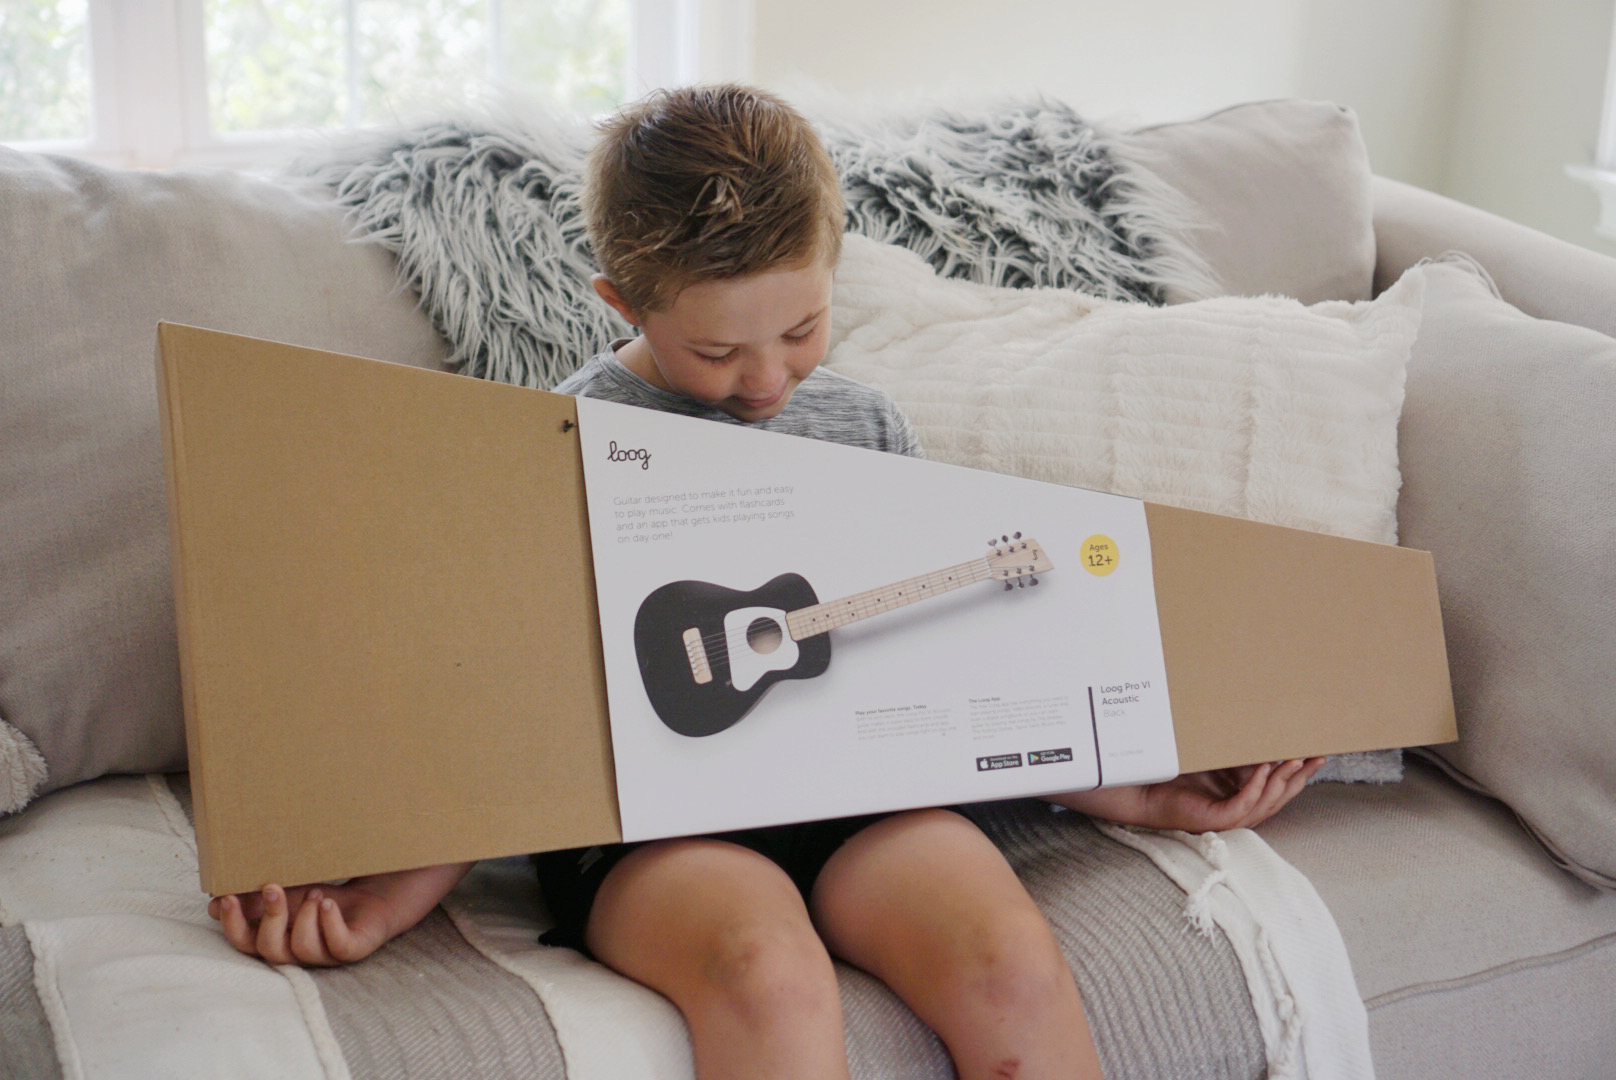 Loog Guitar Review - Best guitar for kids and Guitar Lessons app with video learning plus songbook